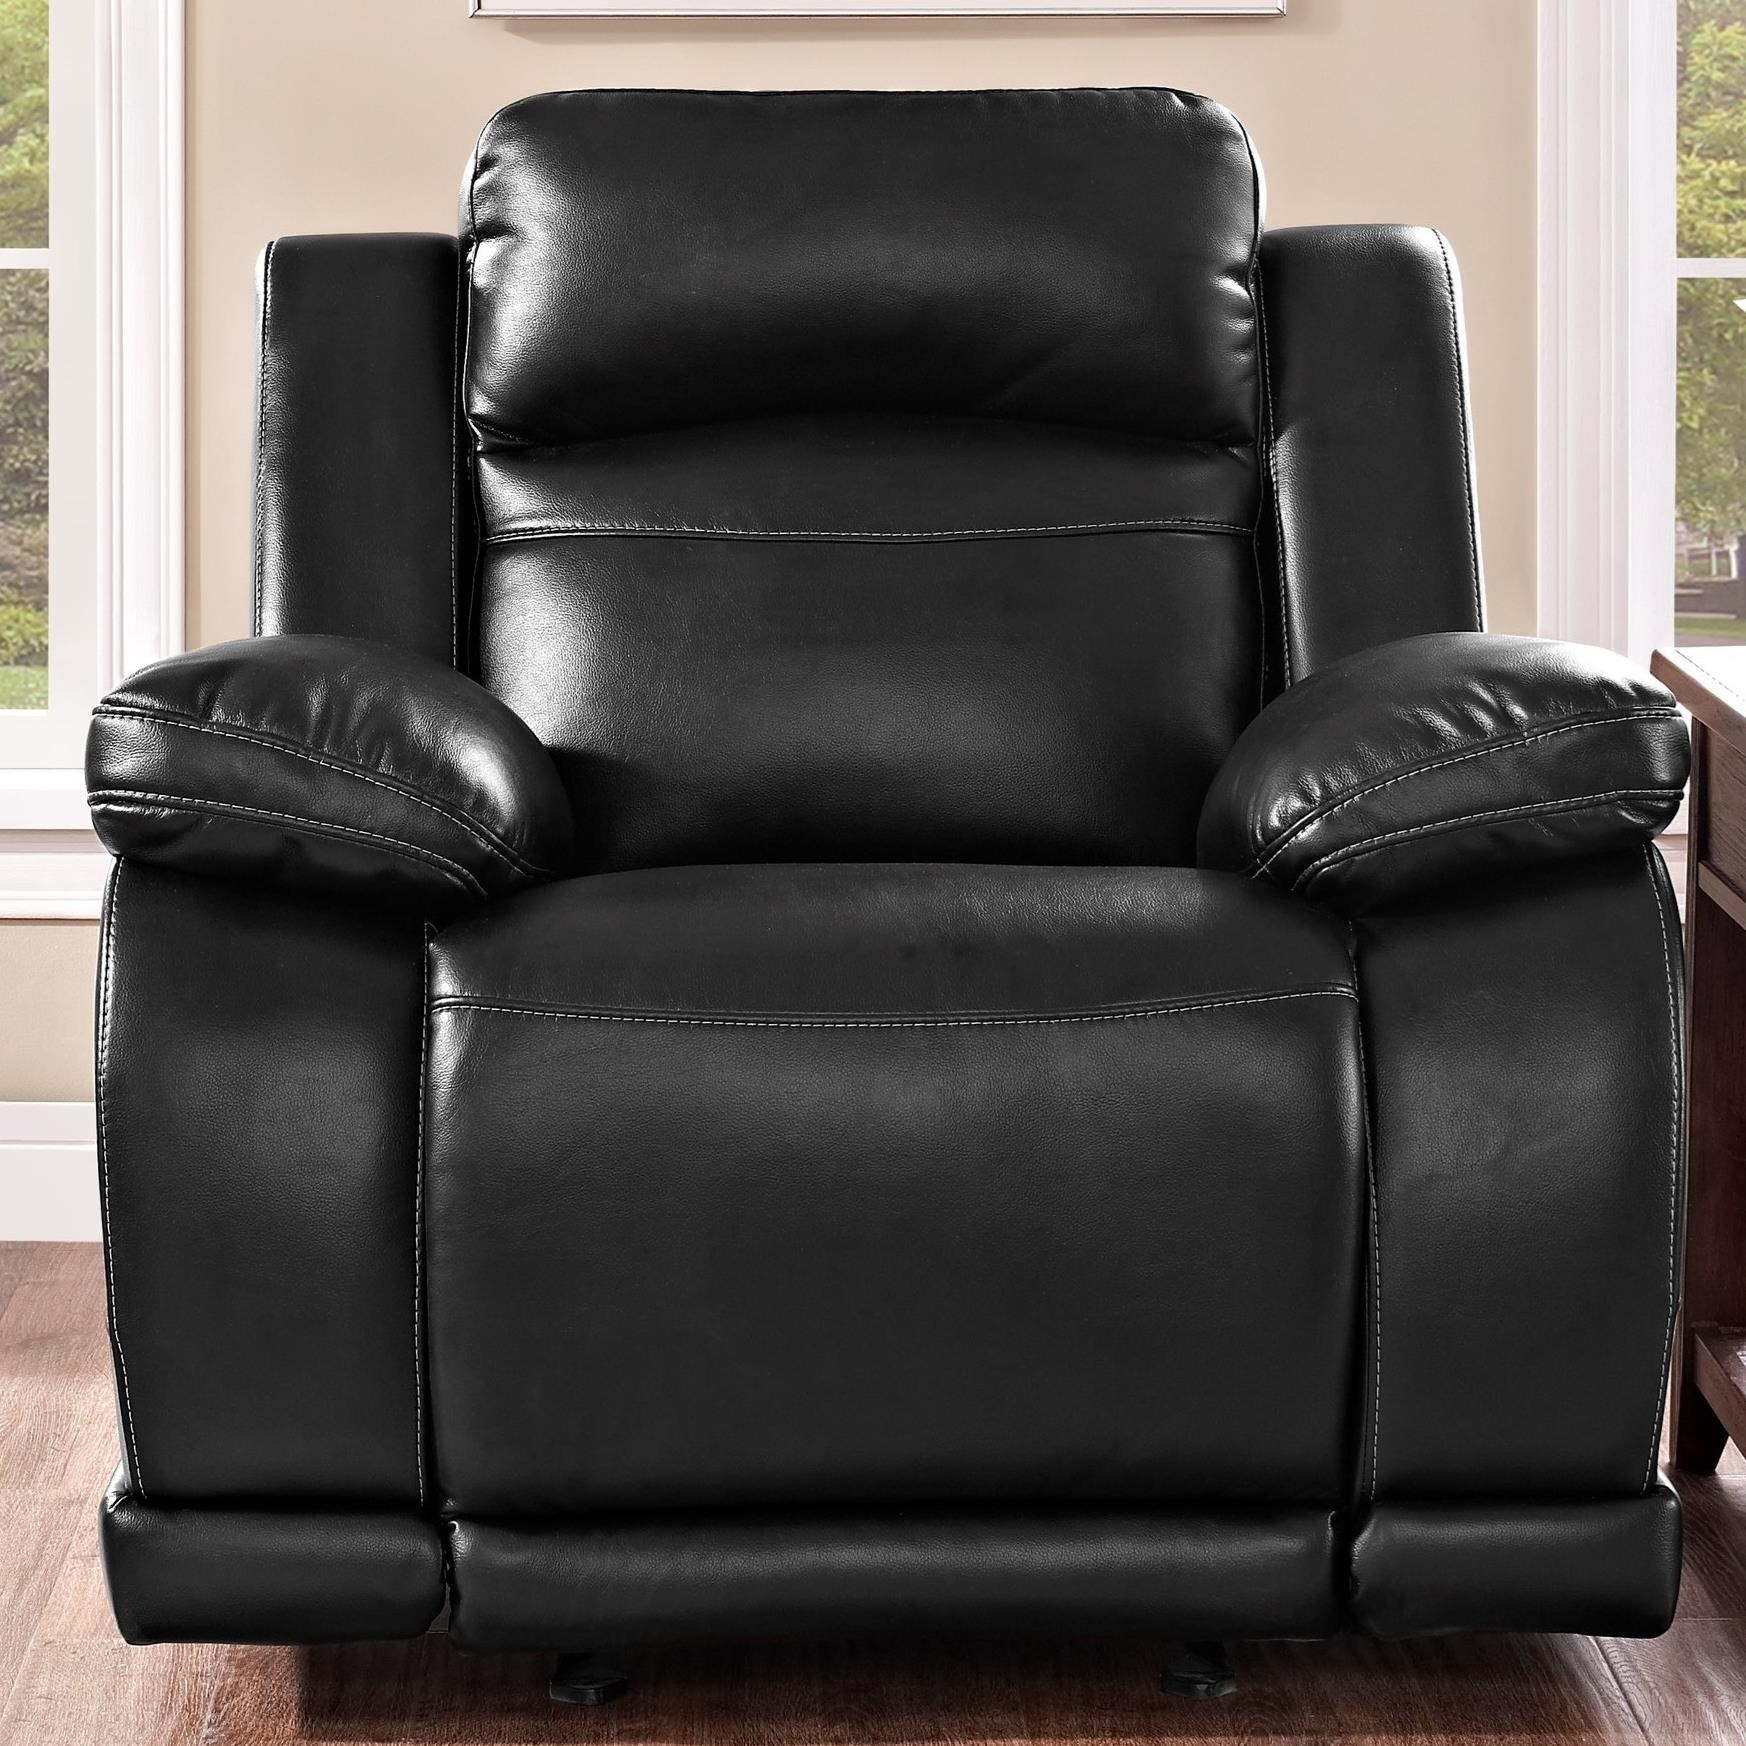 Vega Glider Recliner by New Classic at Arwood's Furniture